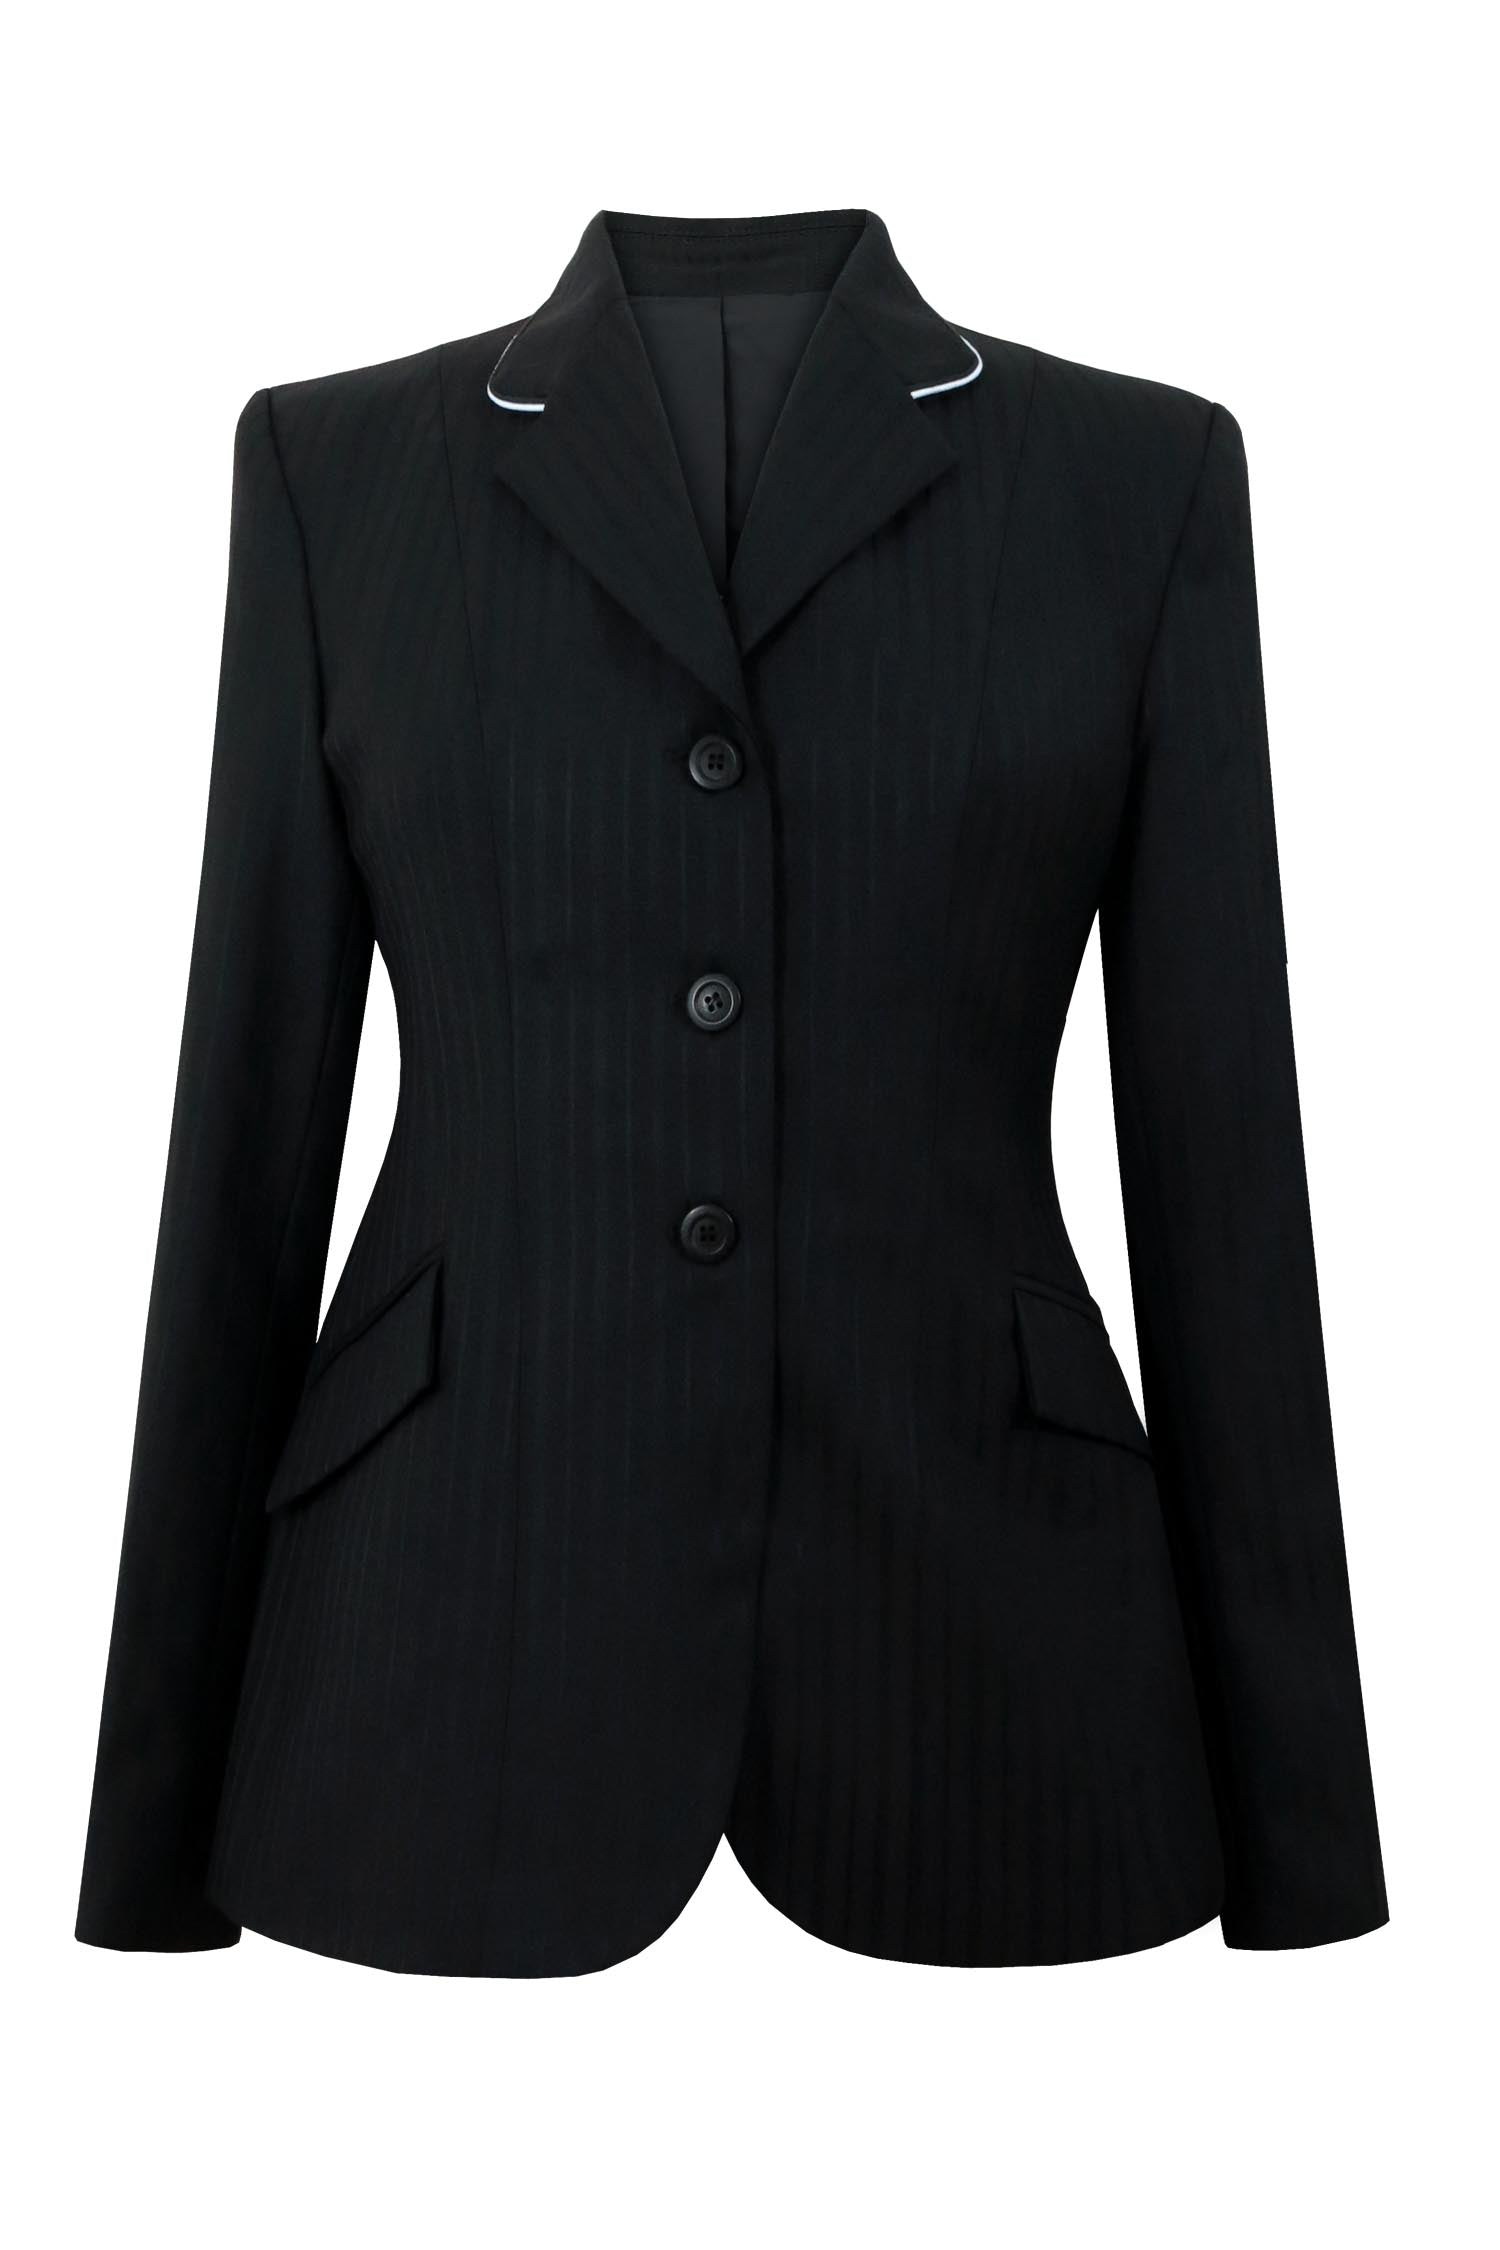 Black multi stripe wool jacket with high sheen. Collar is white piping.